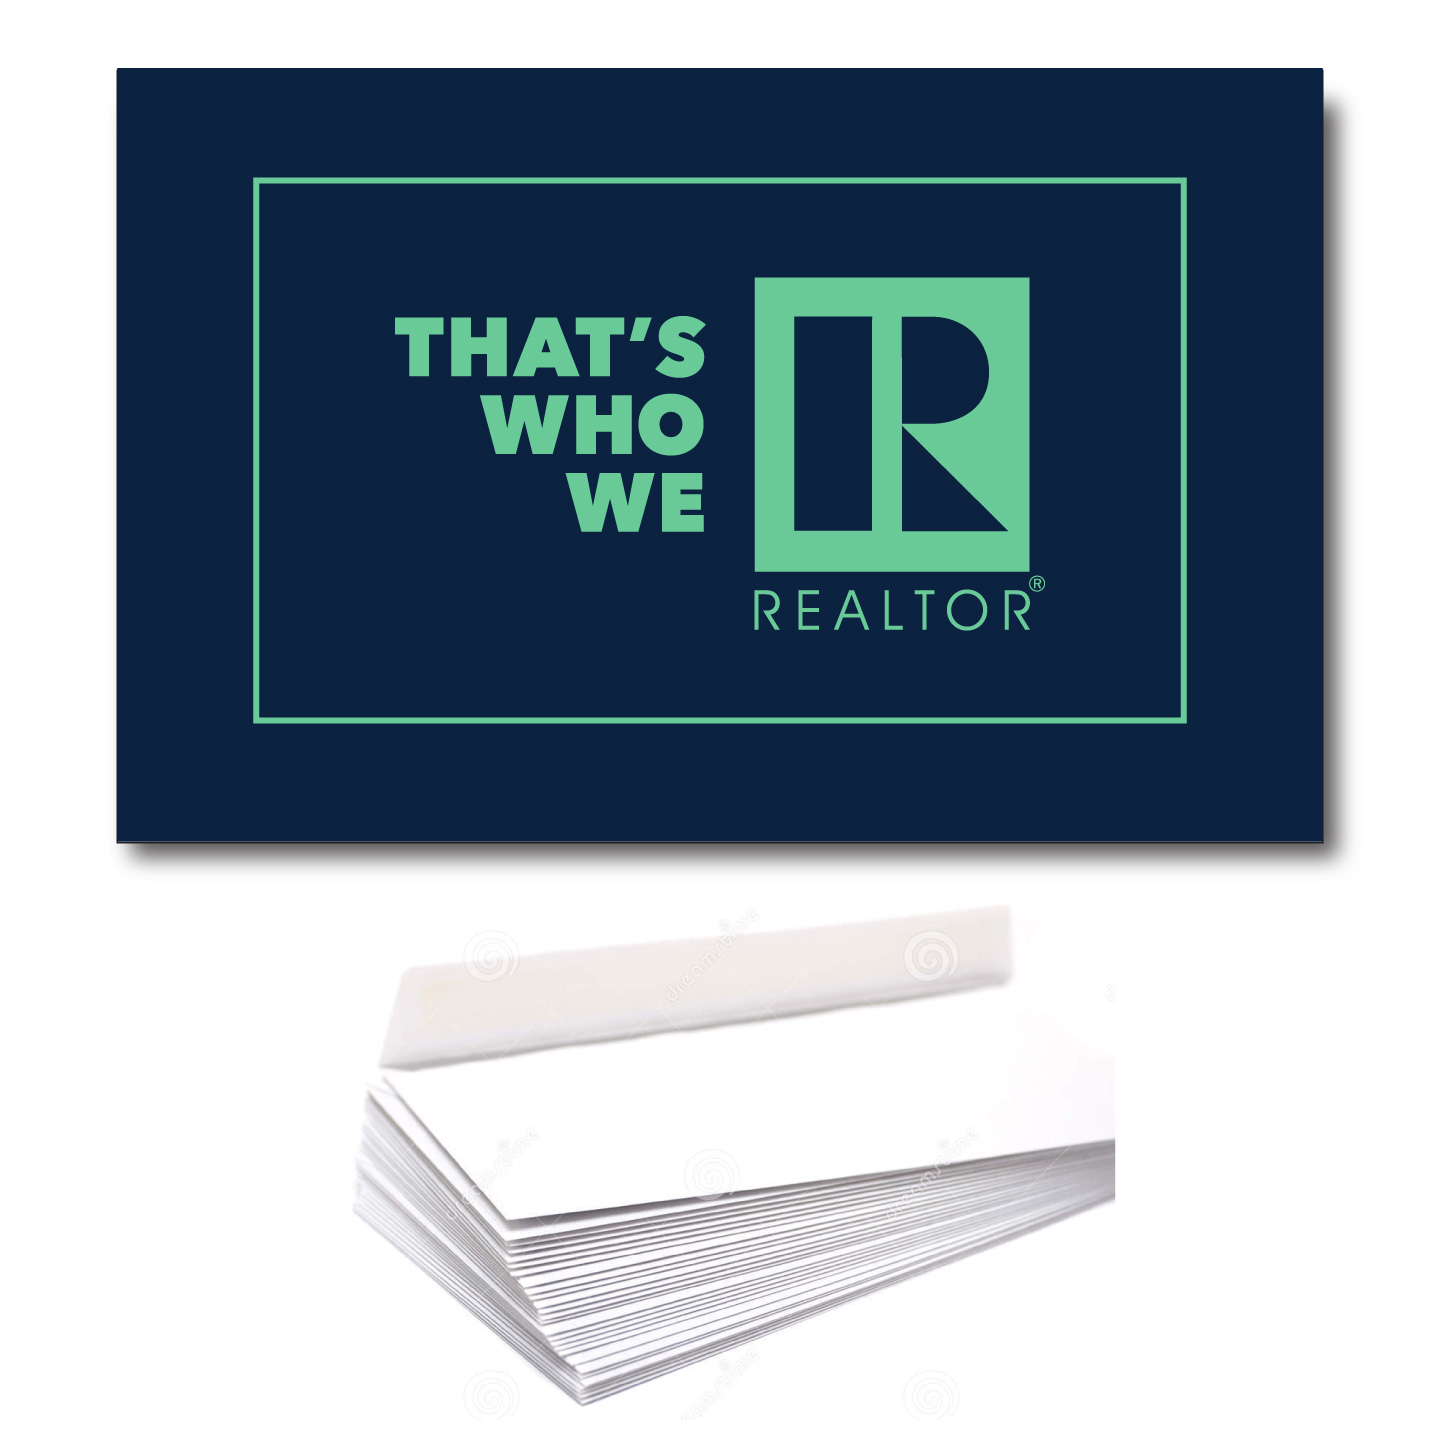 That's Who We R Notecard/Greeting Card Set twwr,ThatsWhoWeR,That's,TWWR,ThatWho,That'sWho,Twwr,Thats,Whos,We,Ares,RTS4013,Notes,Cards,Greetings,Notecards,Envelopes,Mailings,Thanks,Thankyous,TWWR,Thats,Whos,Wes,Ares,